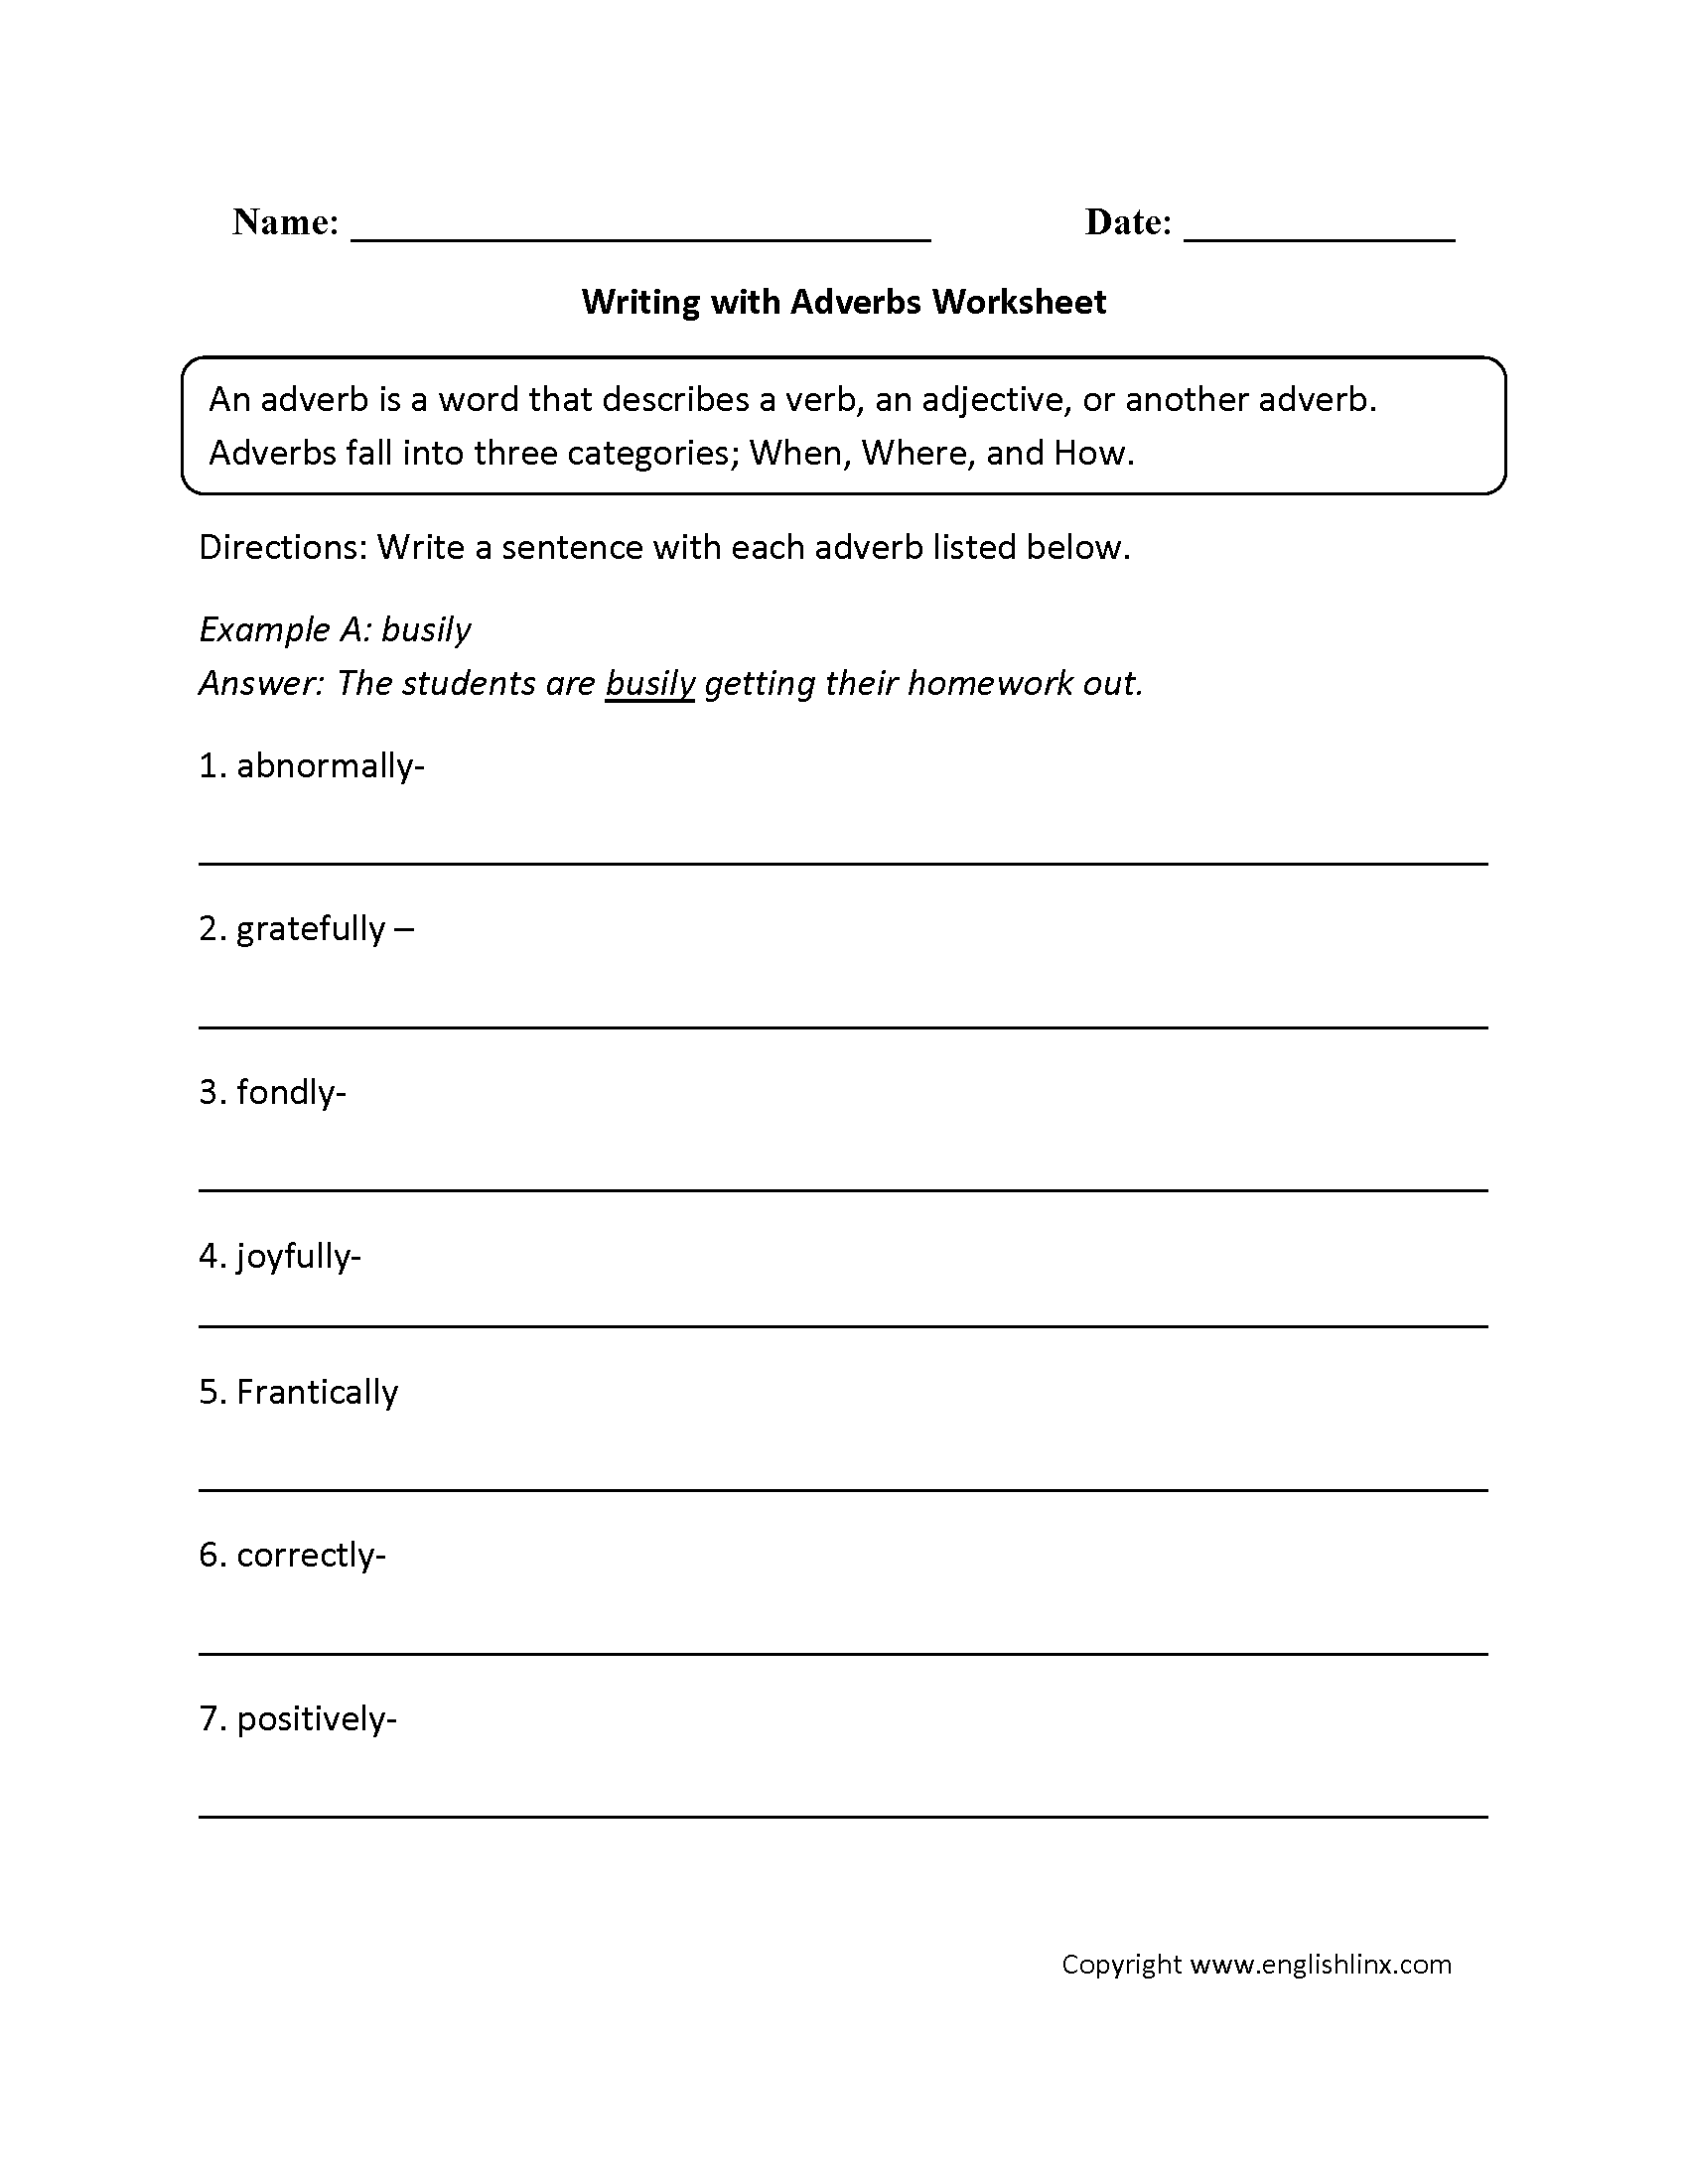 Worksheet Adverb Worksheets For Grade 1 adverbs worksheets regular worksheet